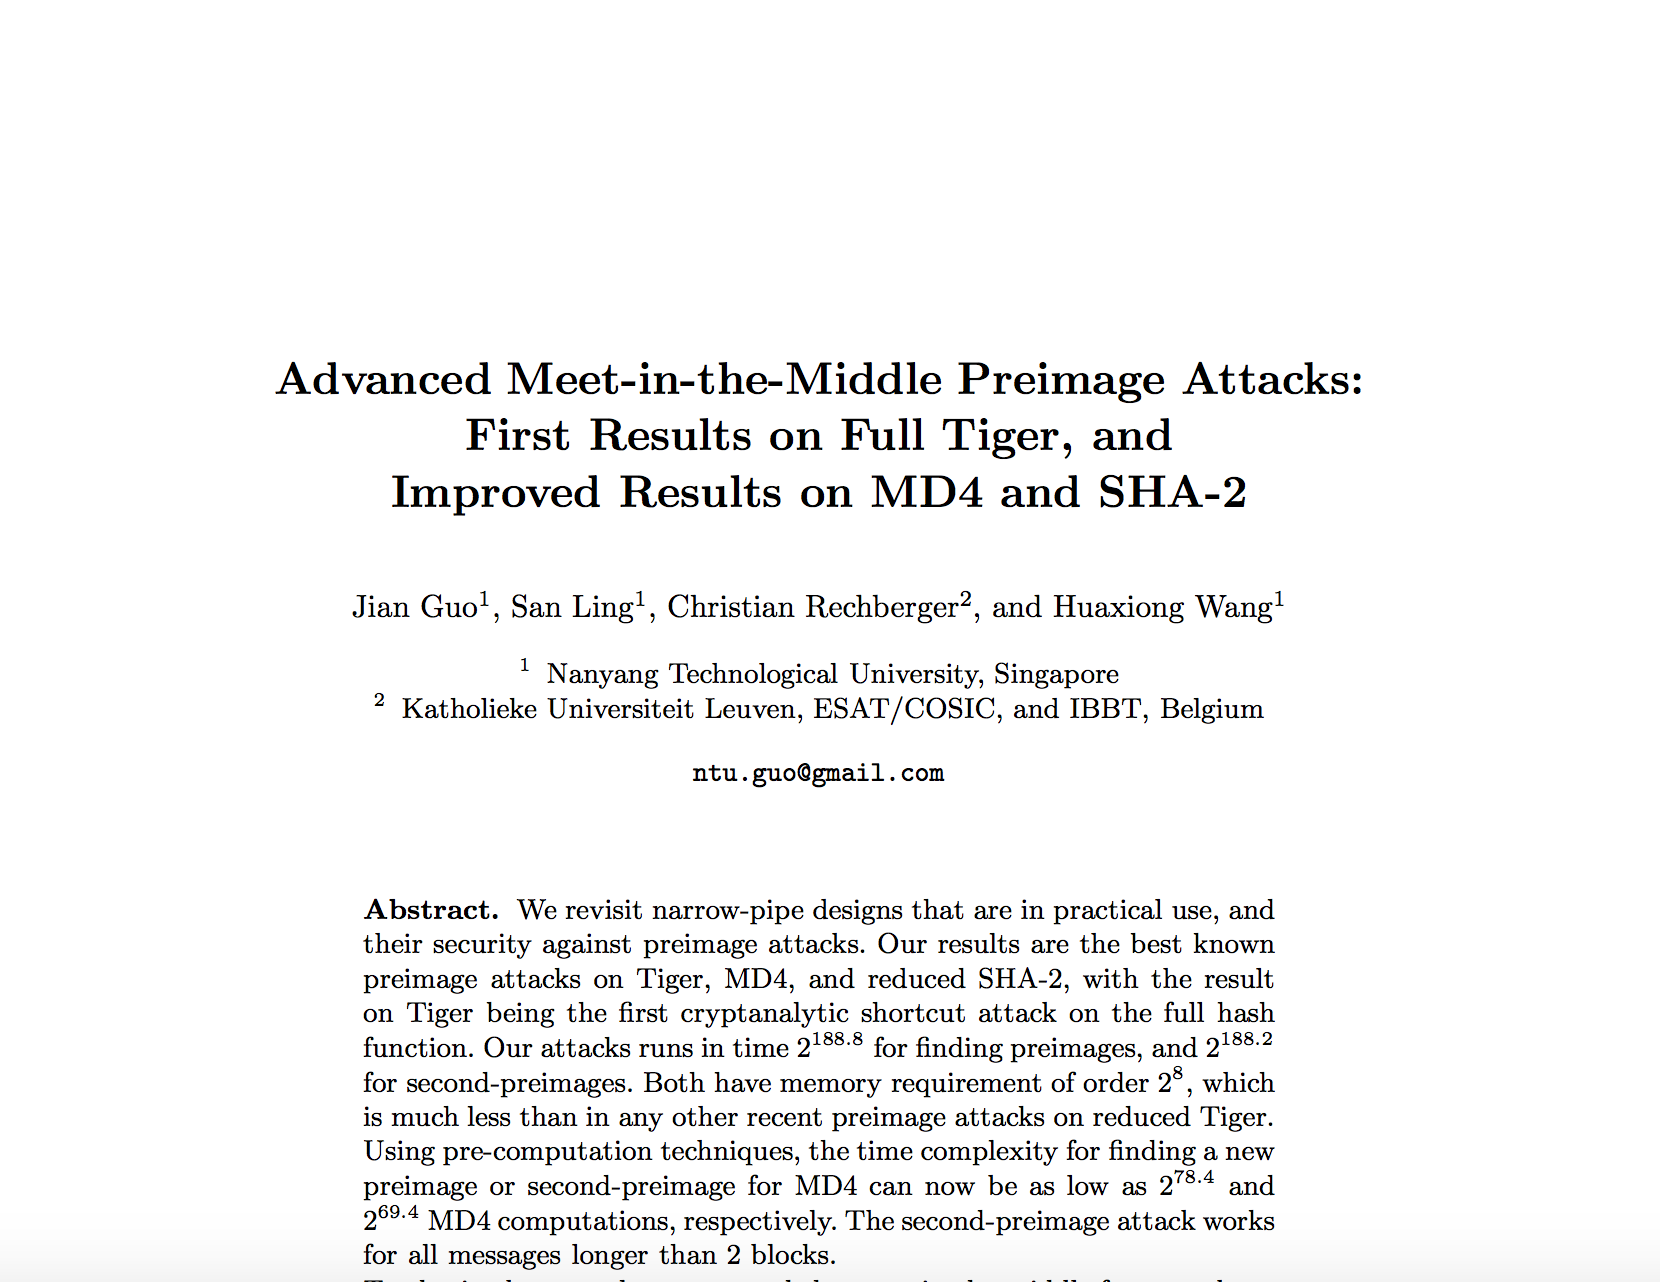 Advanced Meet-in-the-Middle Preimage Attacks- First Results on Full Tiger, and Improved Results on MD4 and SHA-2.png